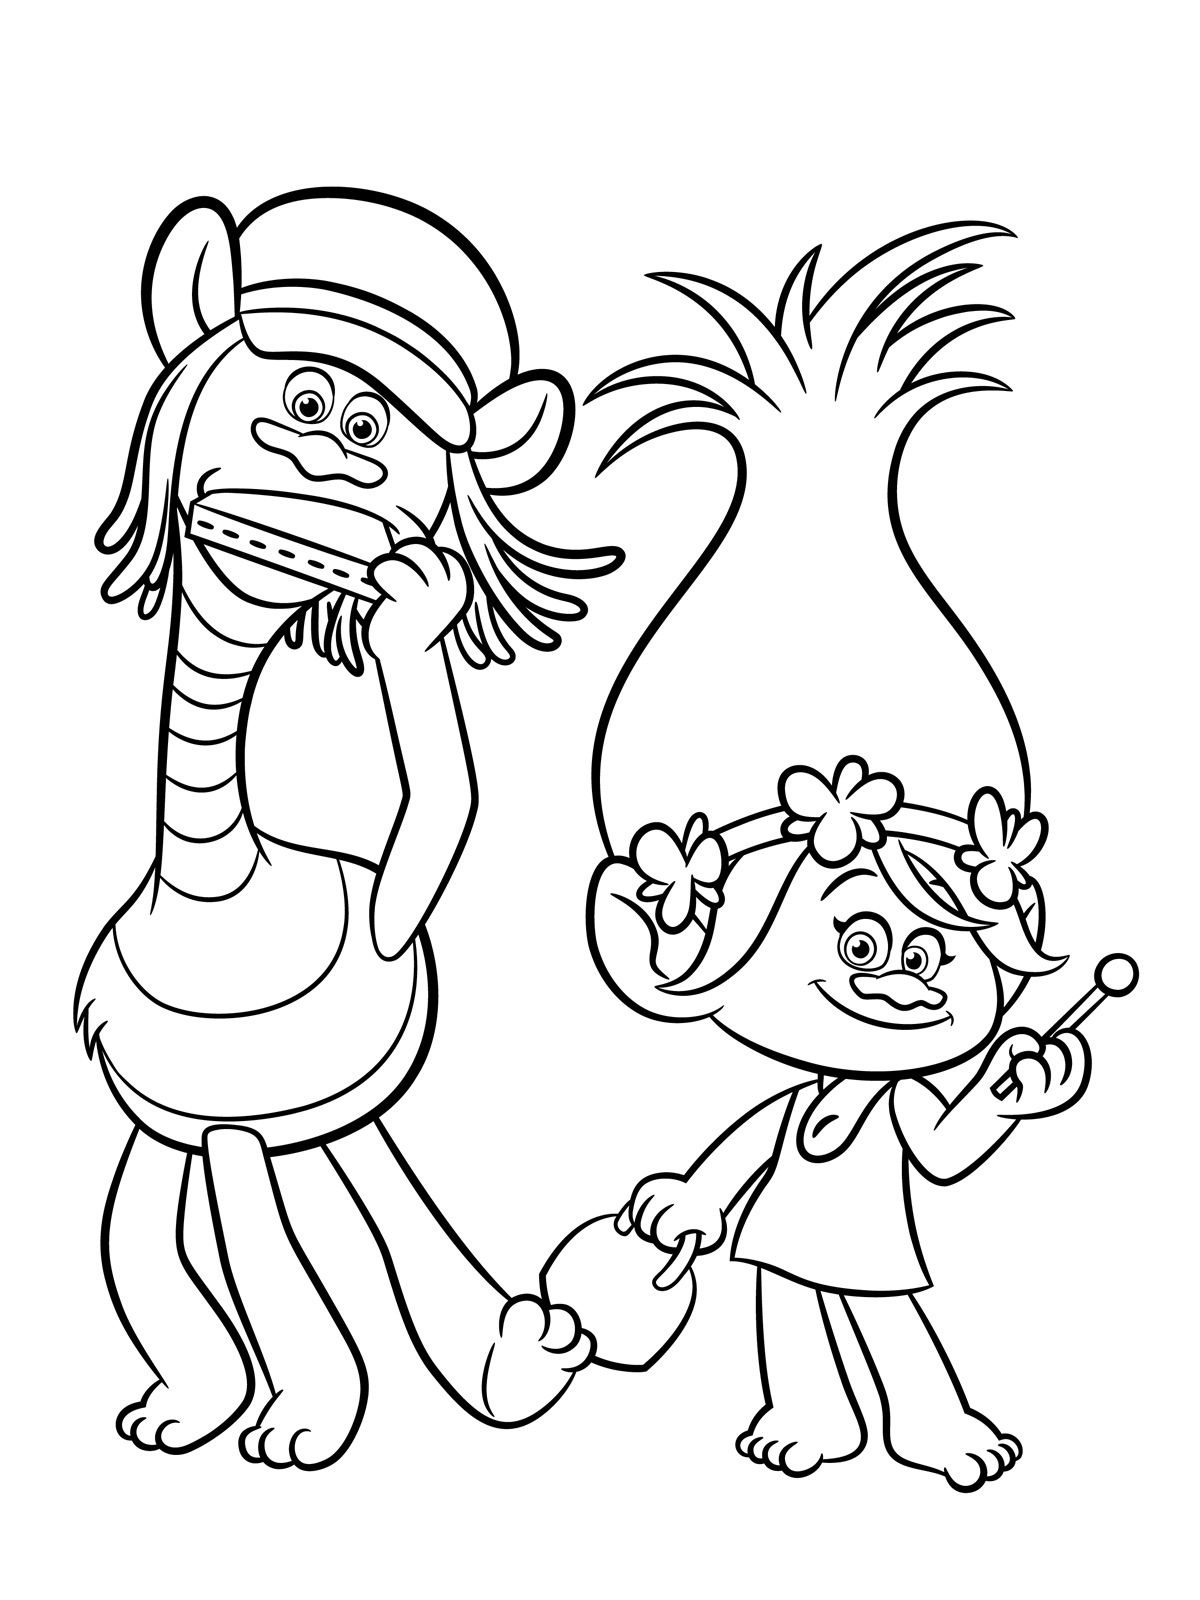 fun coloring pictures free printable goofy coloring pages for kids fun pictures coloring